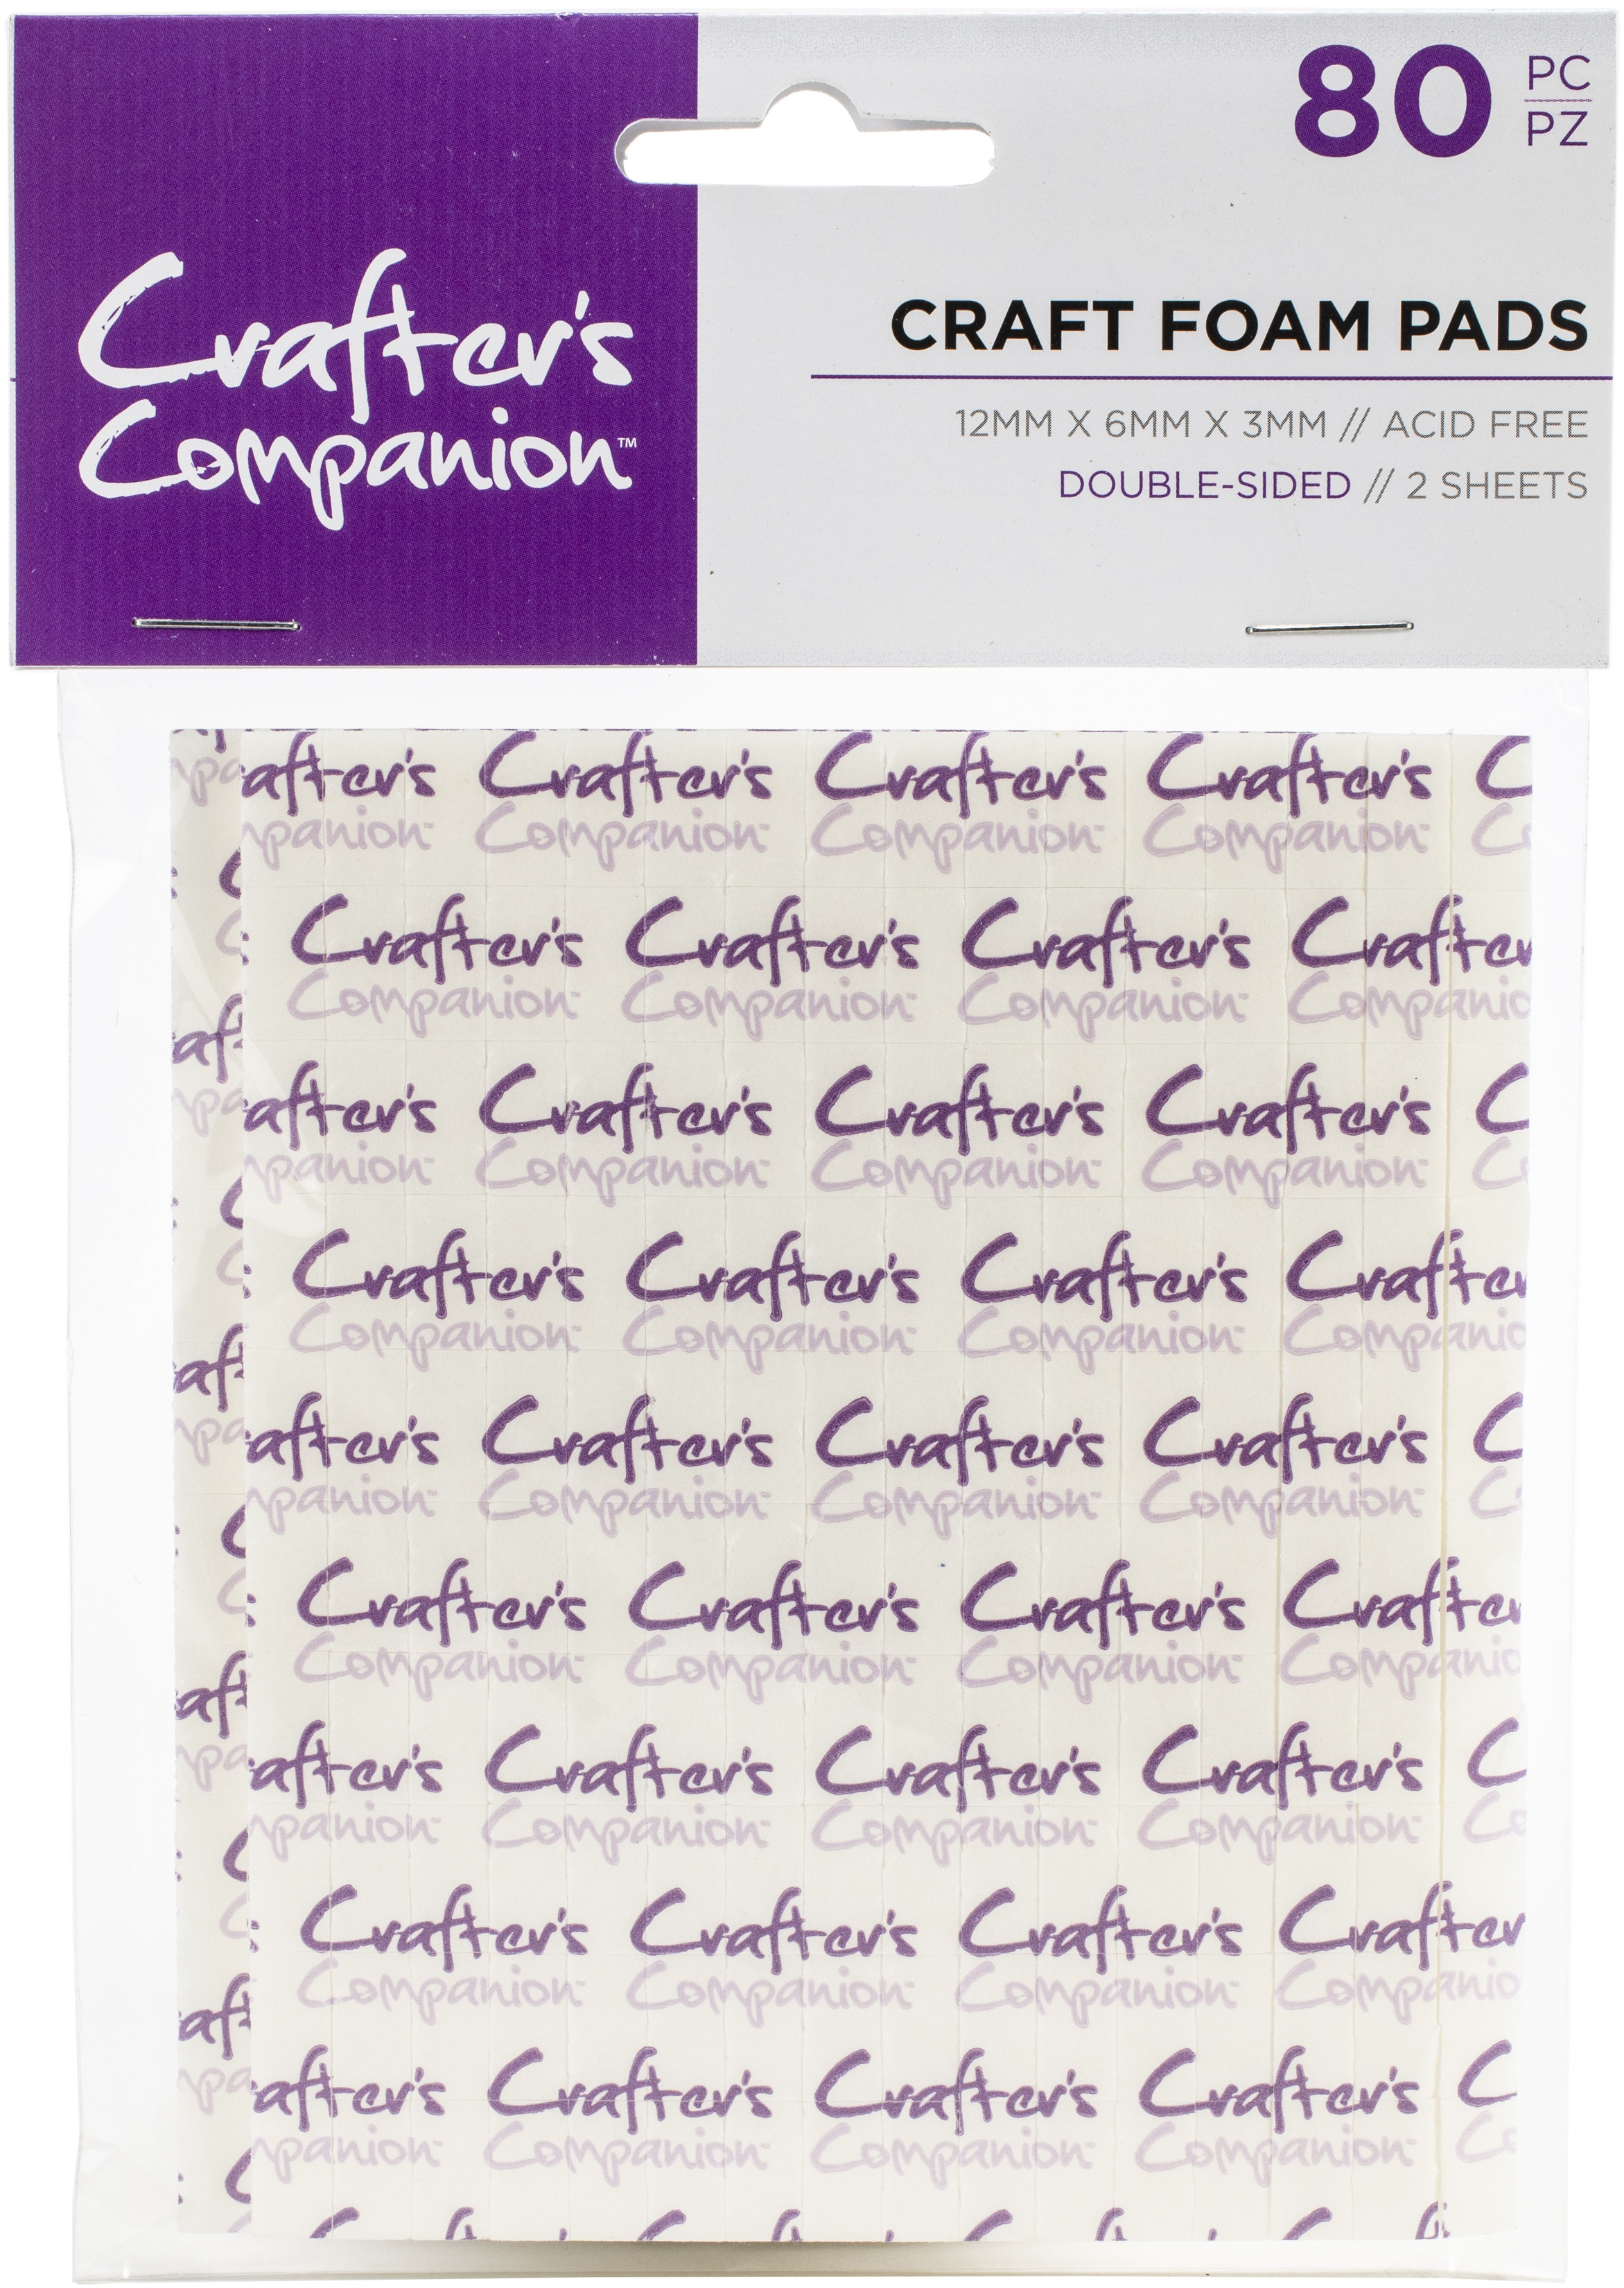 Crafter's Companion Craft Double-Sided Craft Foam Pads -80pcs